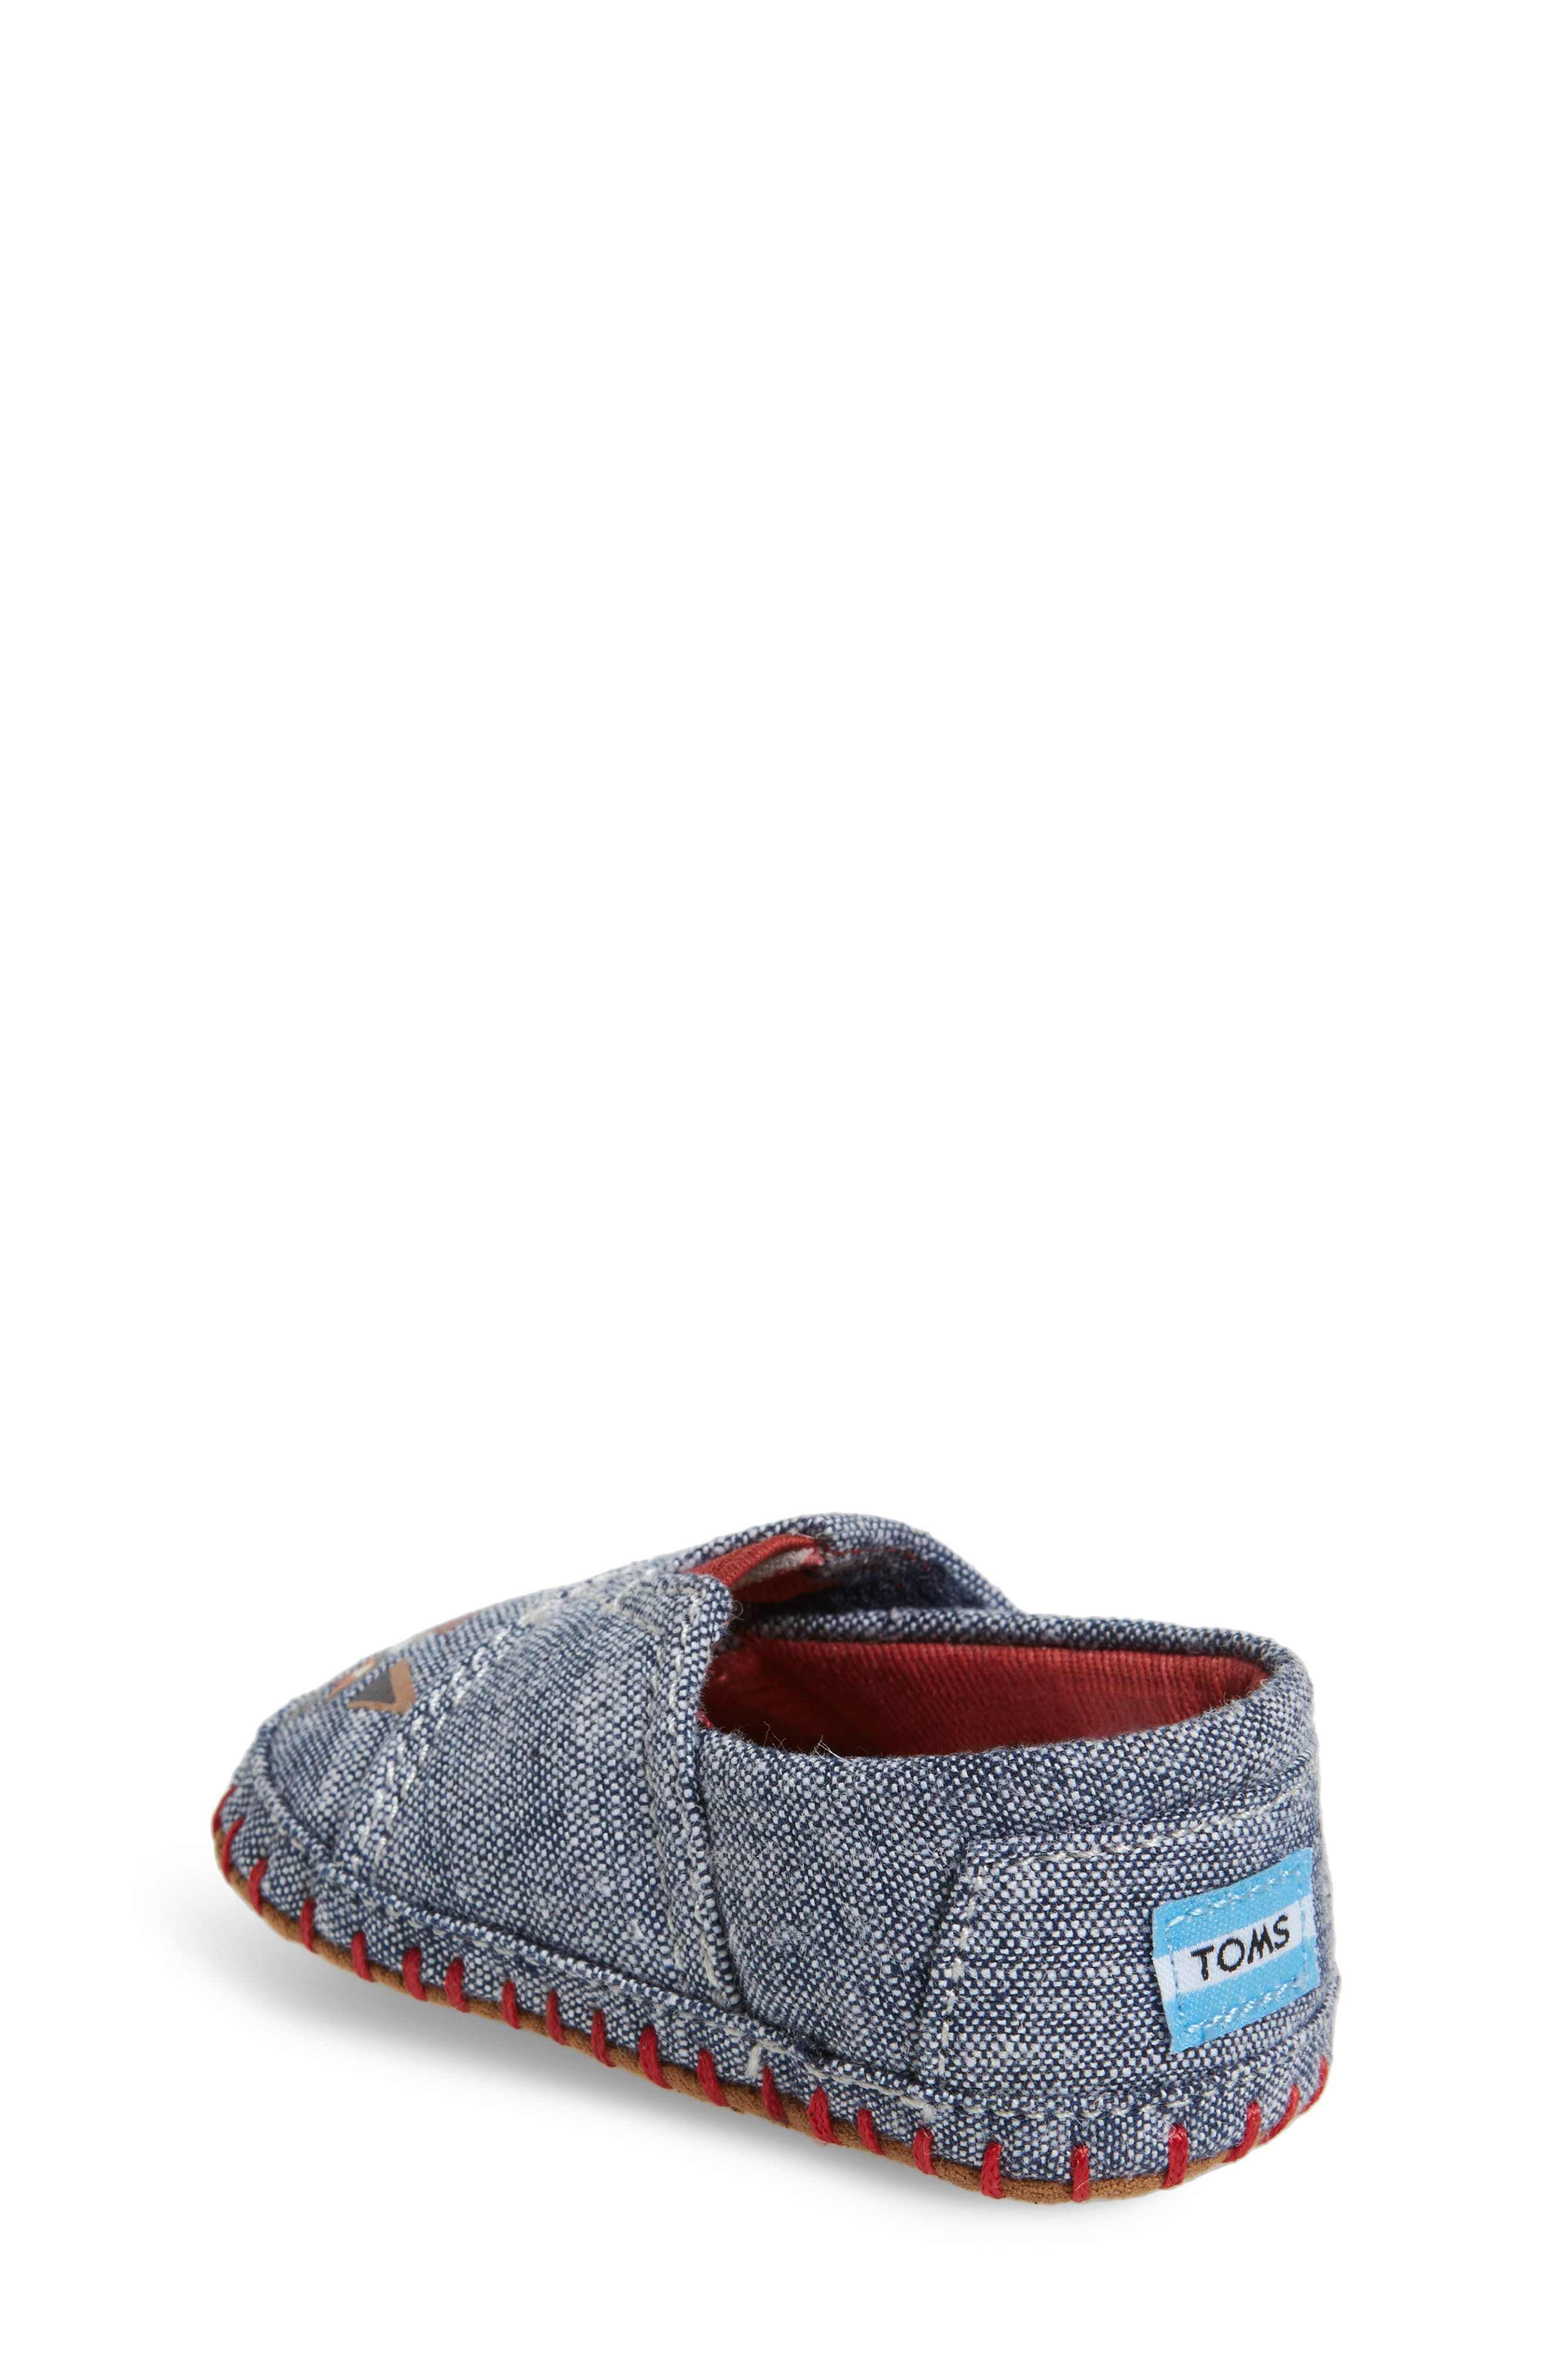 shoe baby toddler crib cribs c shoes style toms nordstrom walker